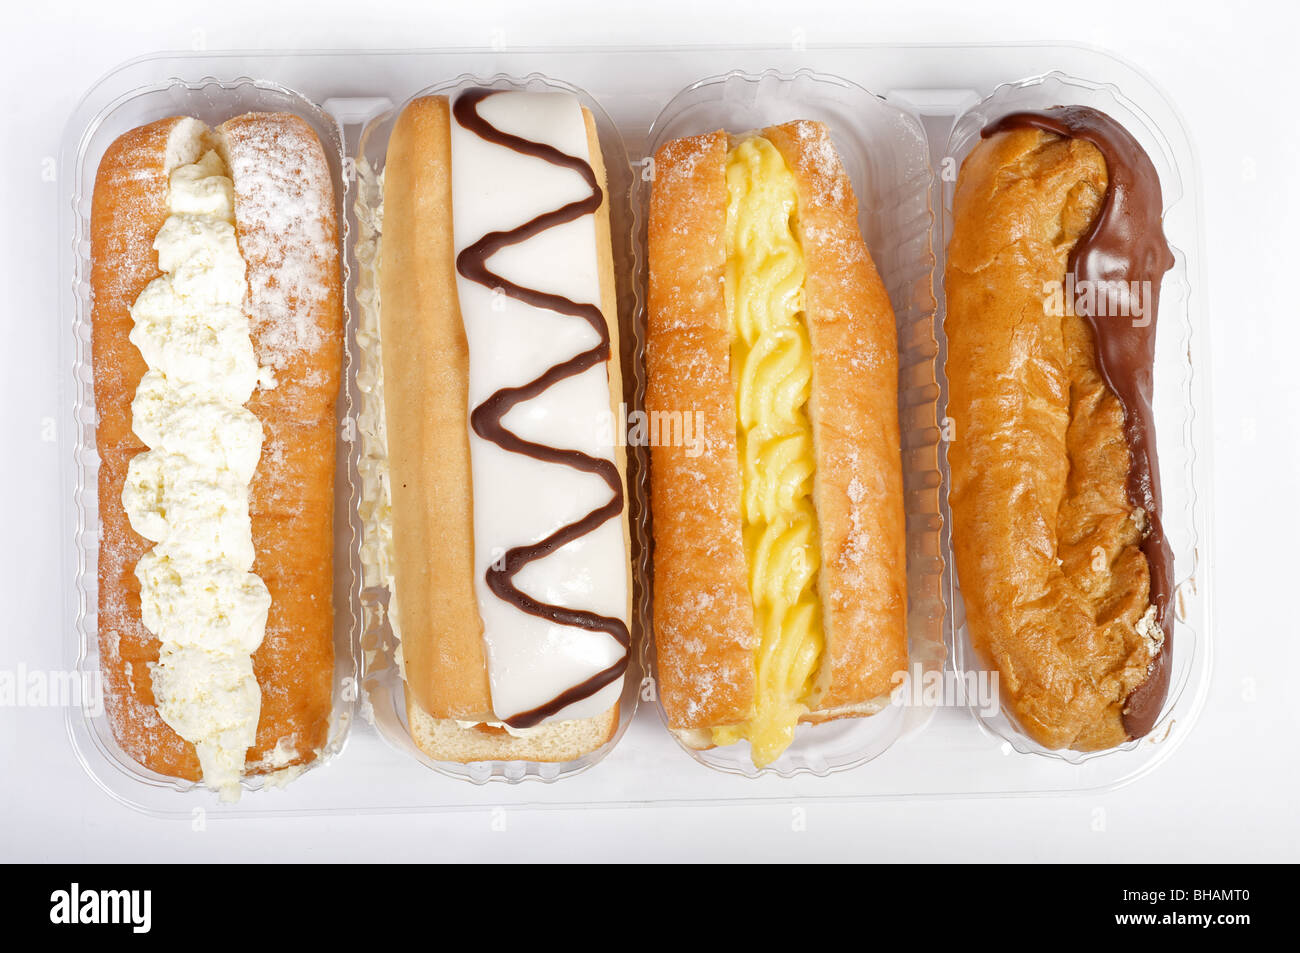 Selection of Fresh Daily Cream cakes - Stock Image